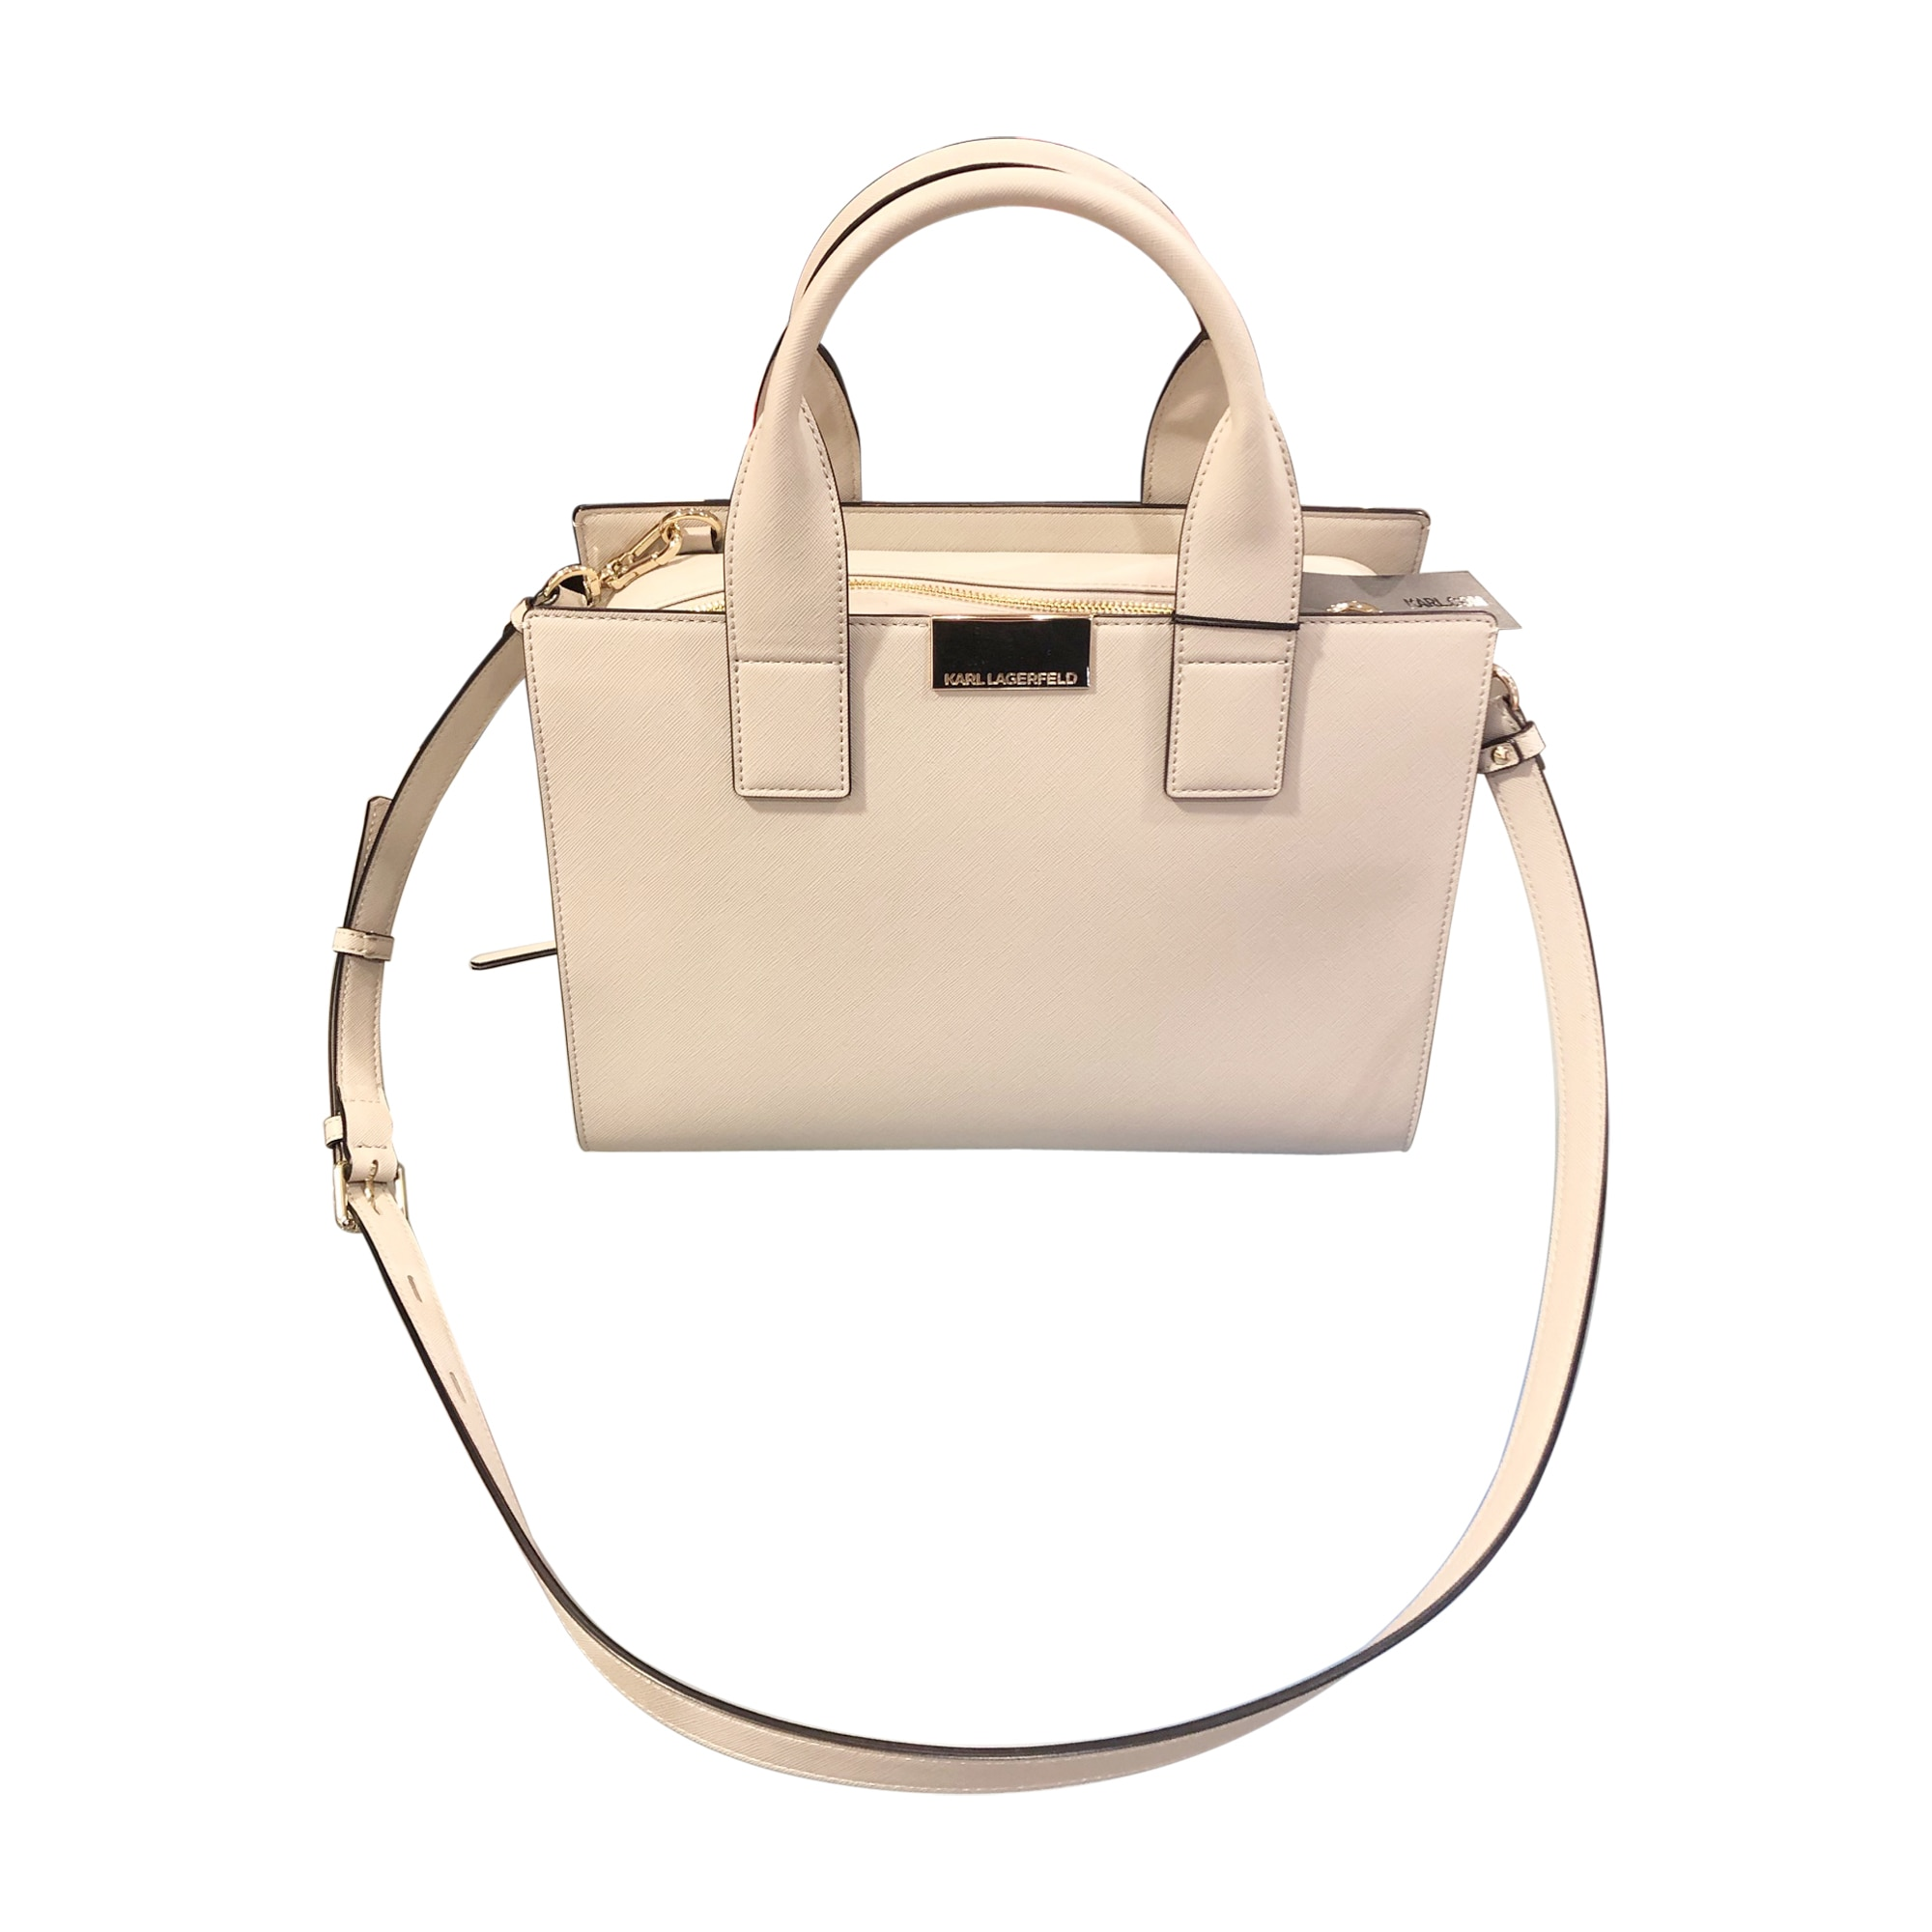 Non-Leather Handbag KARL LAGERFELD Beige, camel